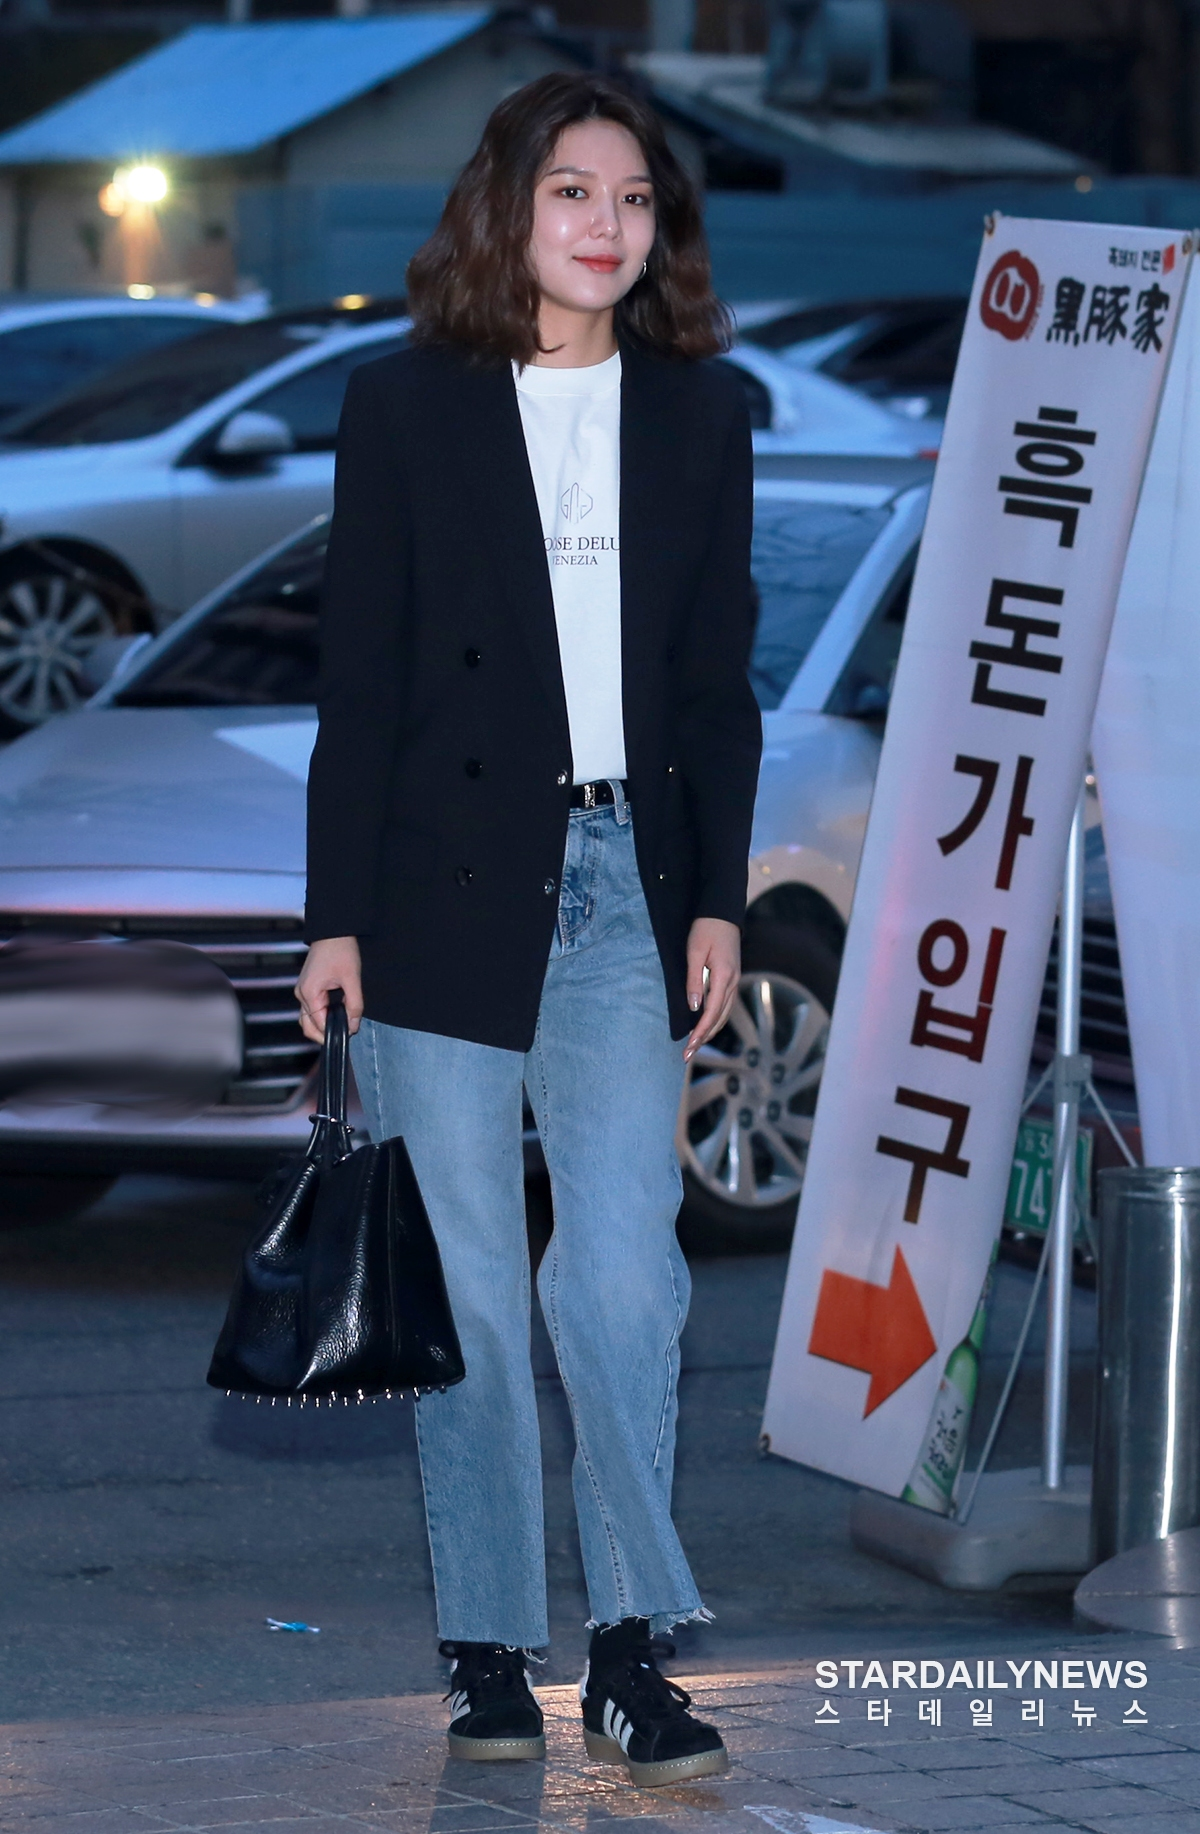 Index of /data/soshi/pictures/sooyoung/public/180309-man-who-sets